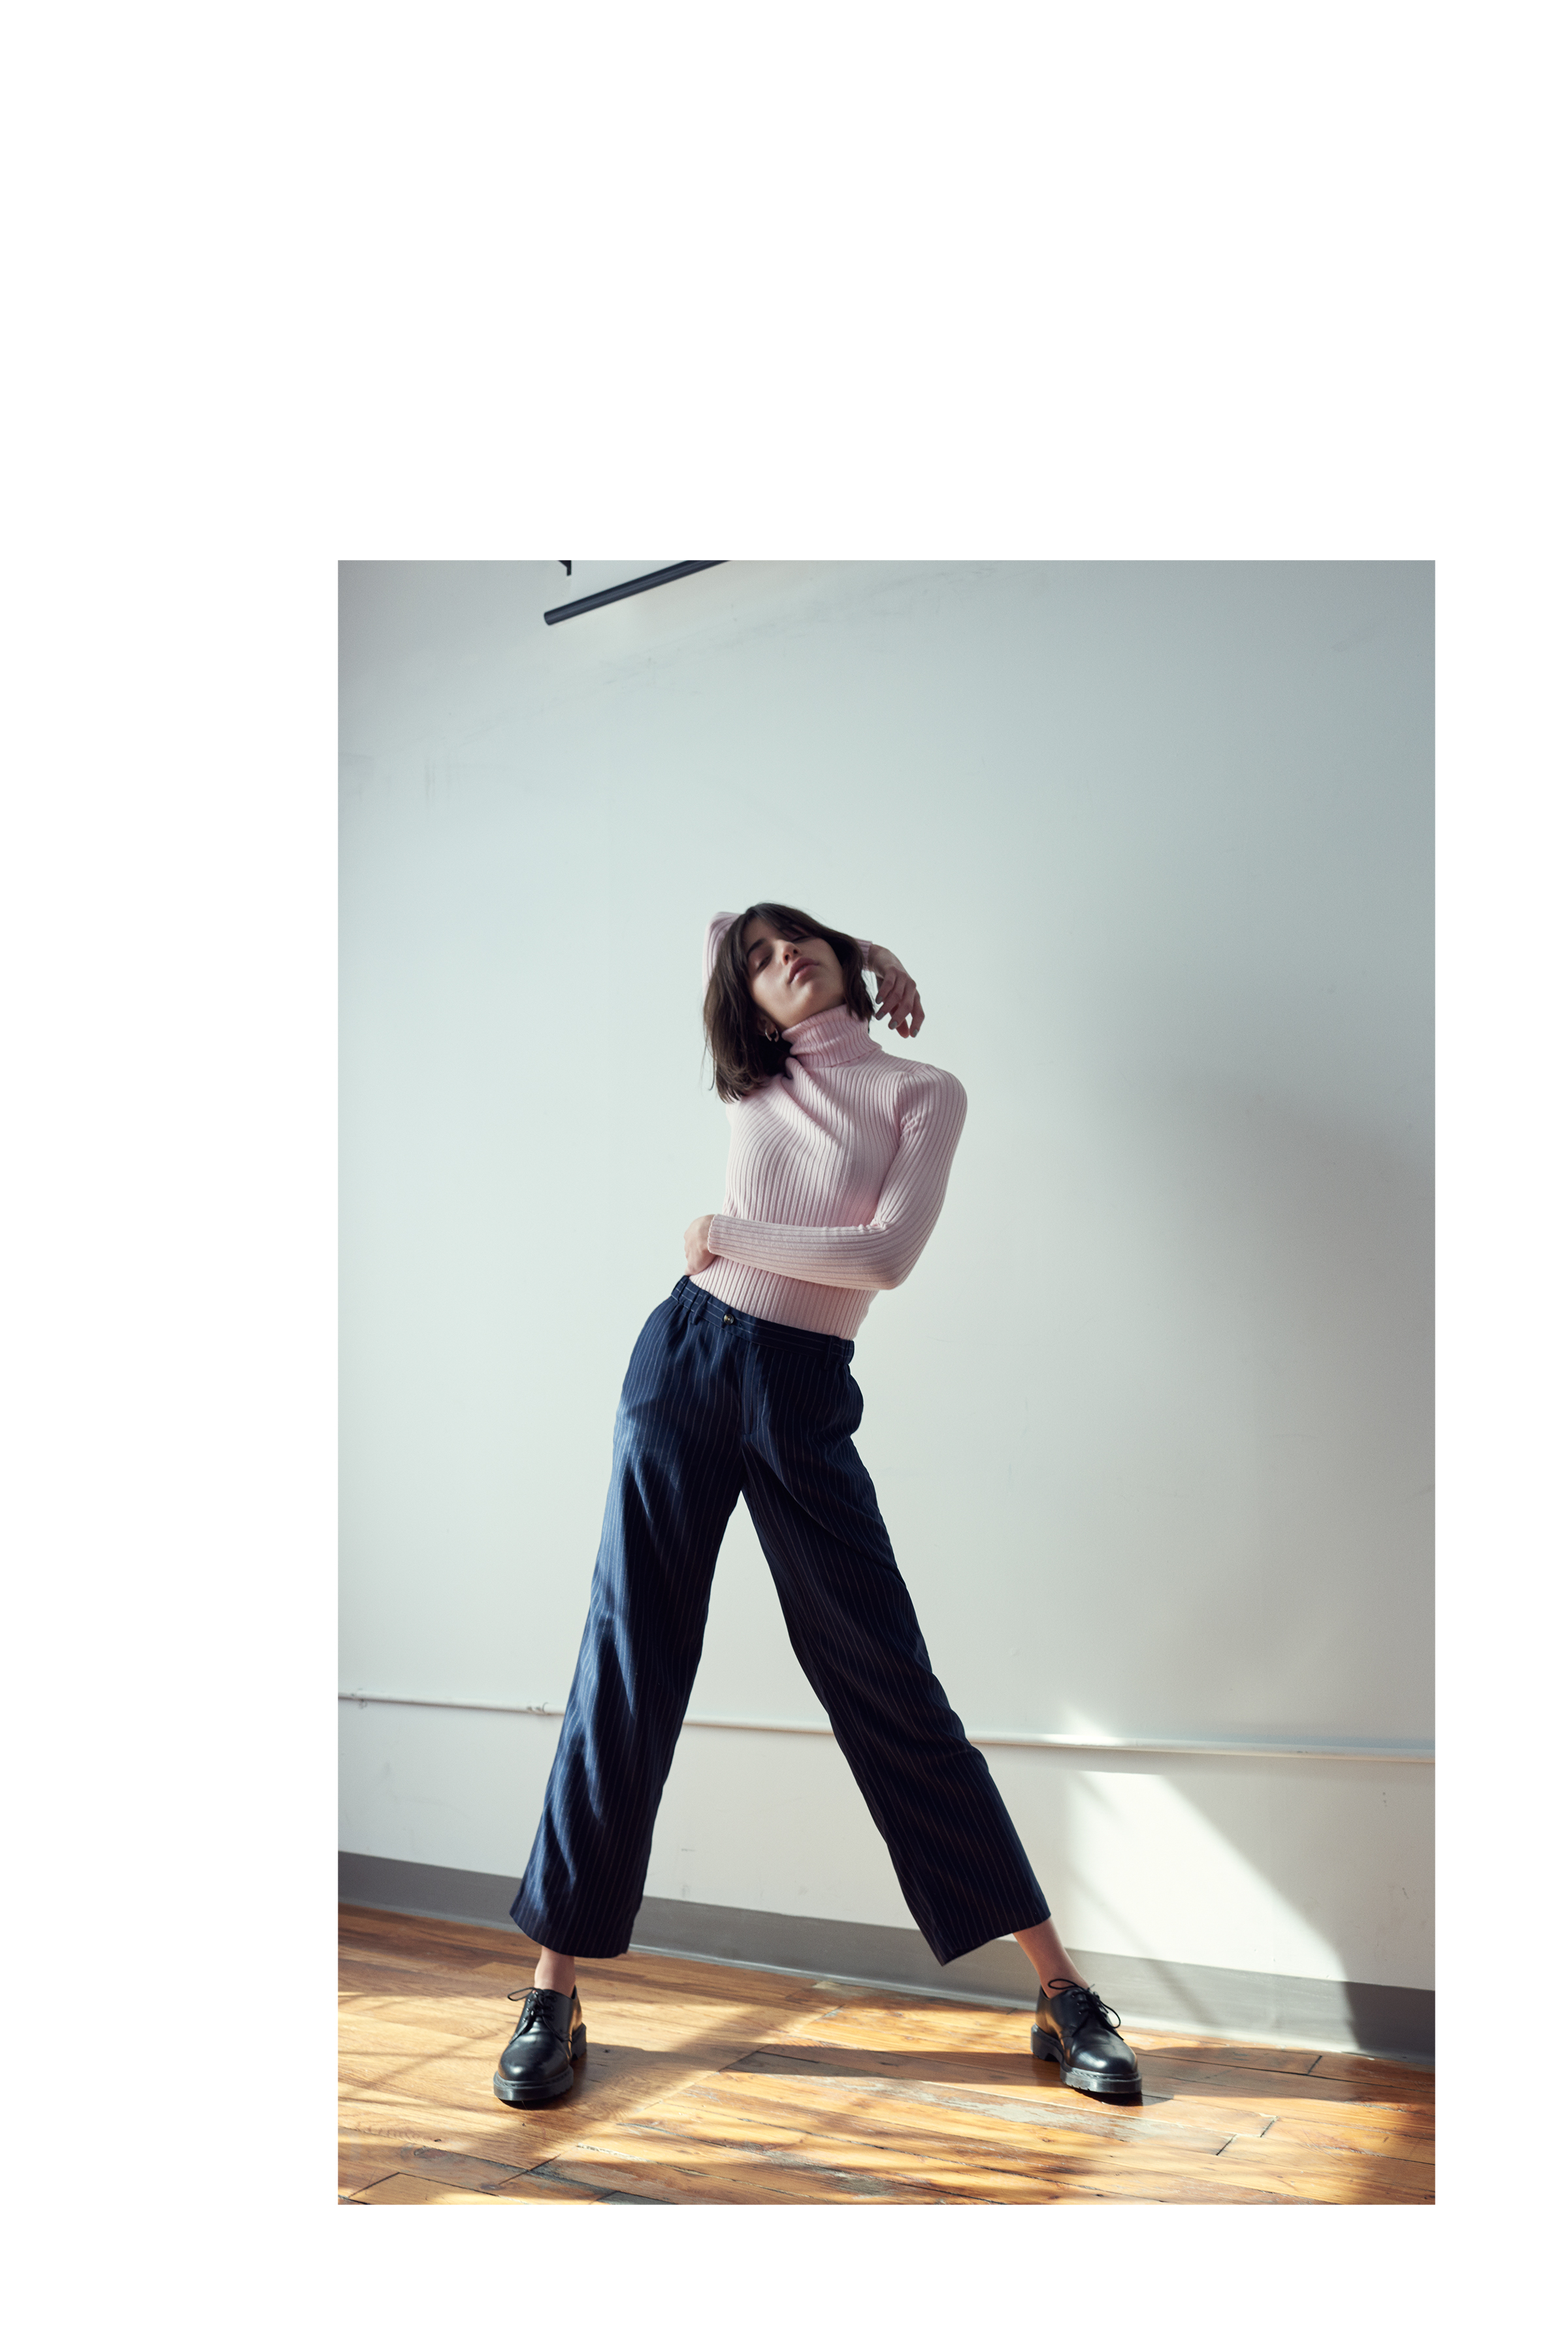 Knit Turtleneck  Gui Giu  Neckpiece  Lucia Pearl   Trousers and shoes  stylists own